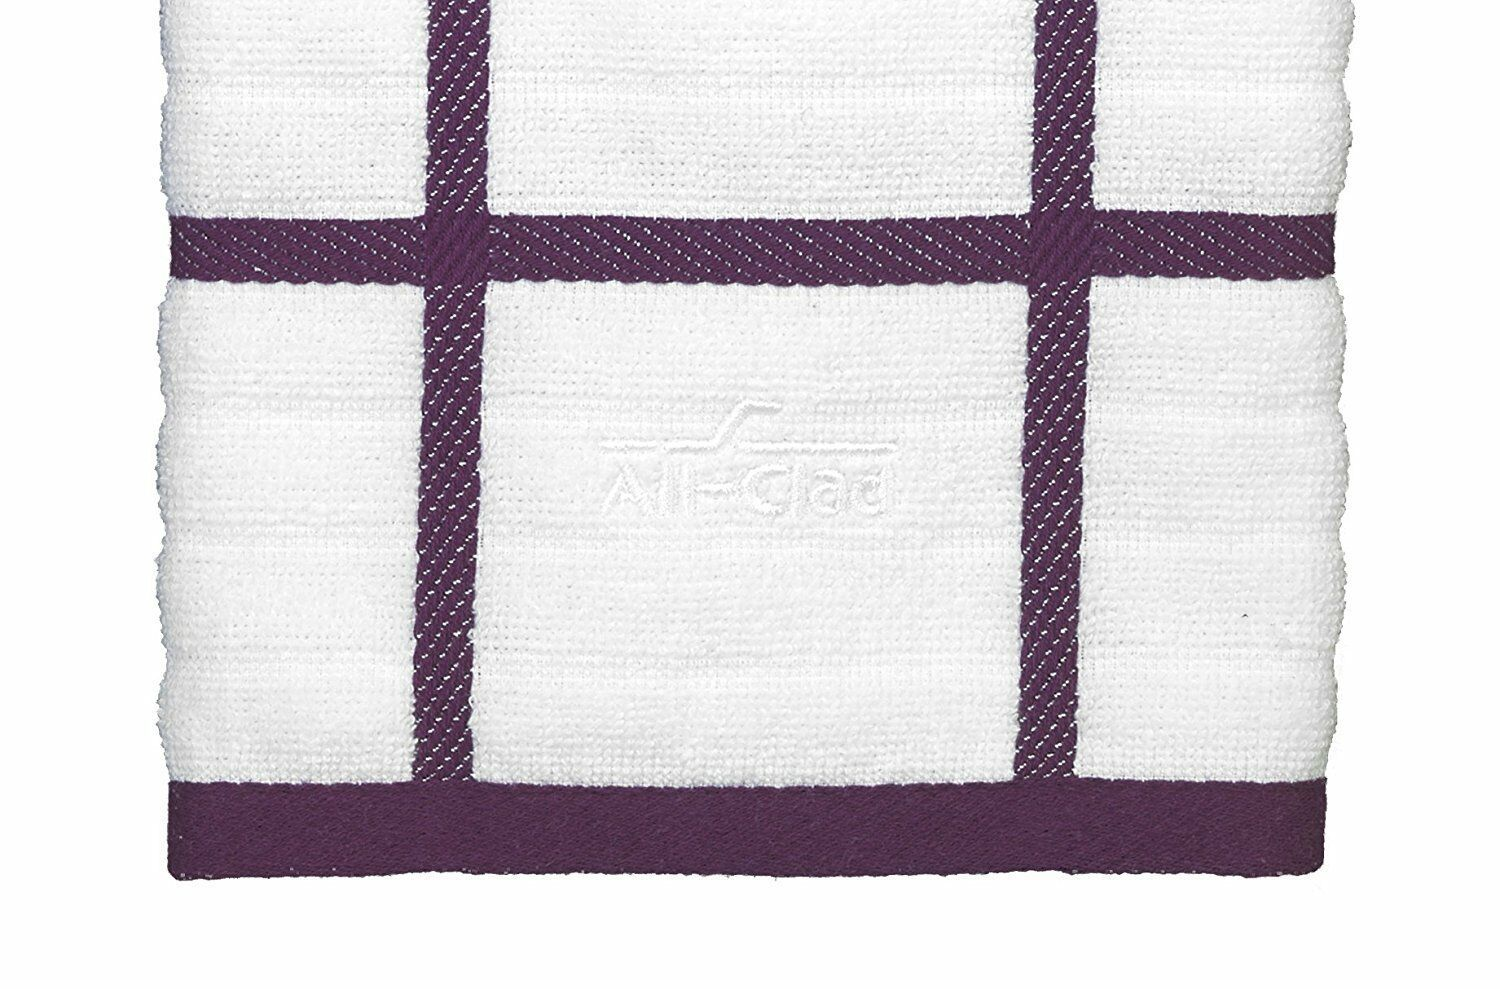 All-Clad Textiles 100-Percent Combed Cotton Kitchen Towel Oversized Plum